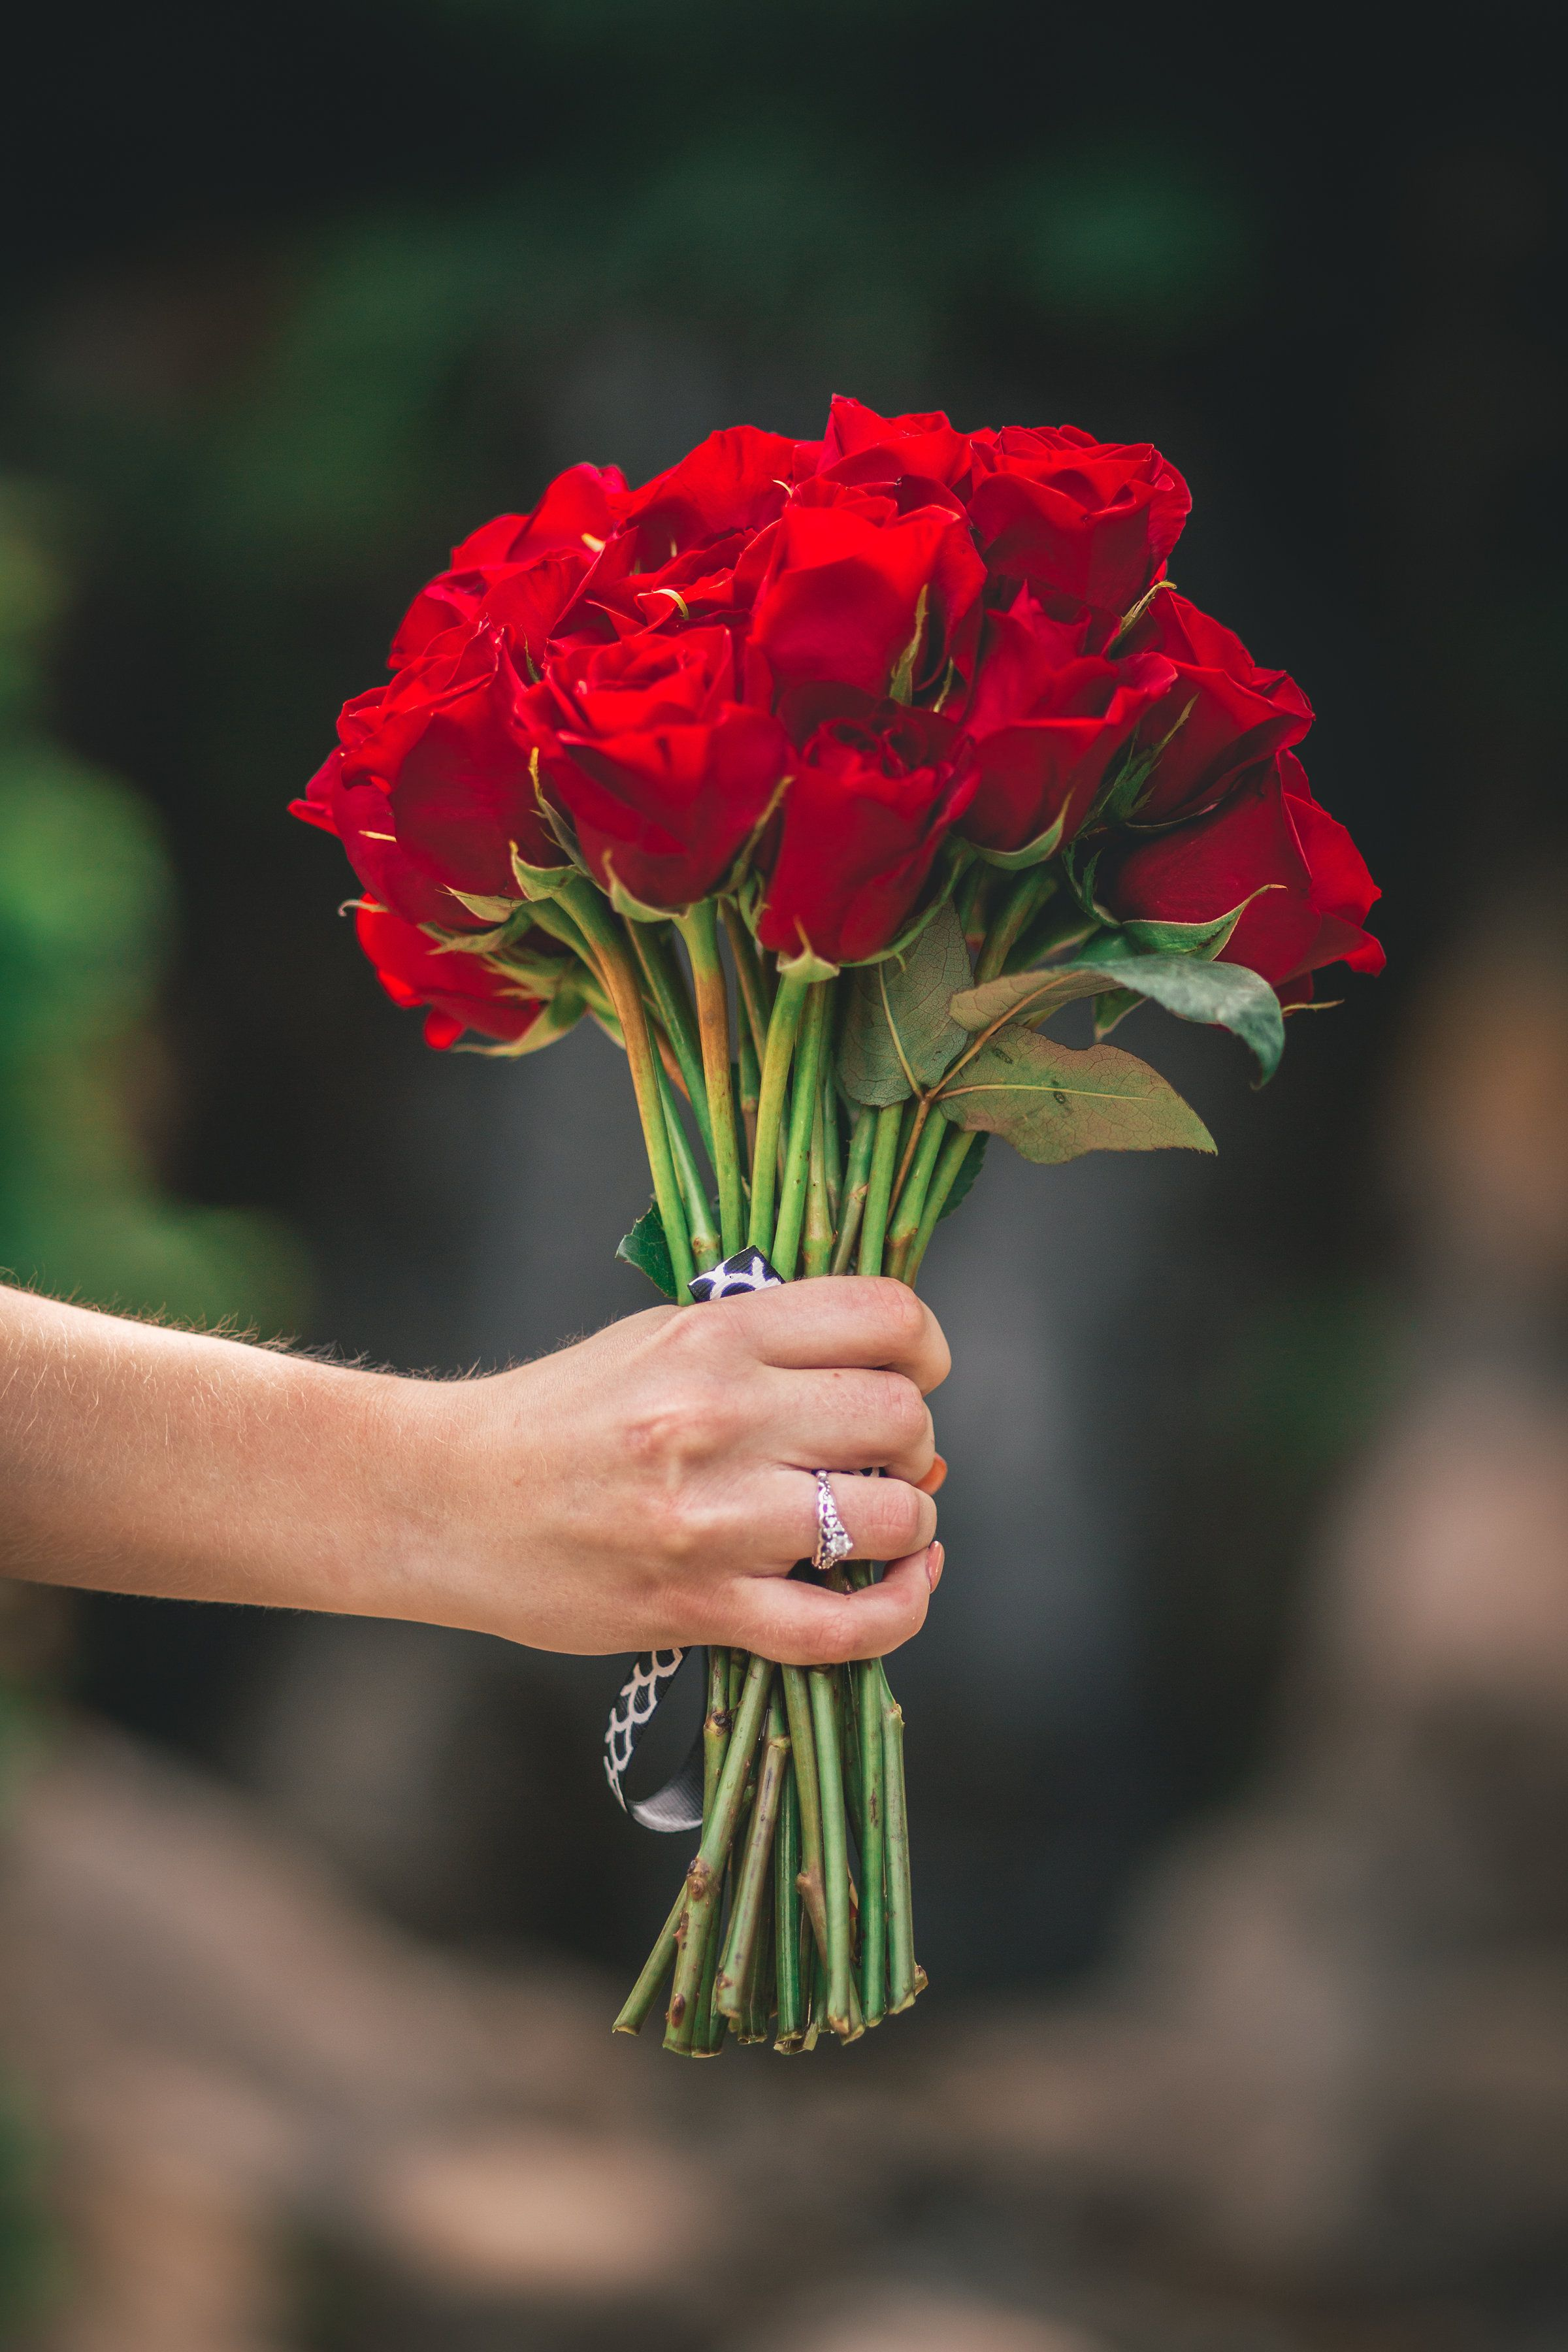 A fresh Valentine's Day rose bouquet is the perfect gift